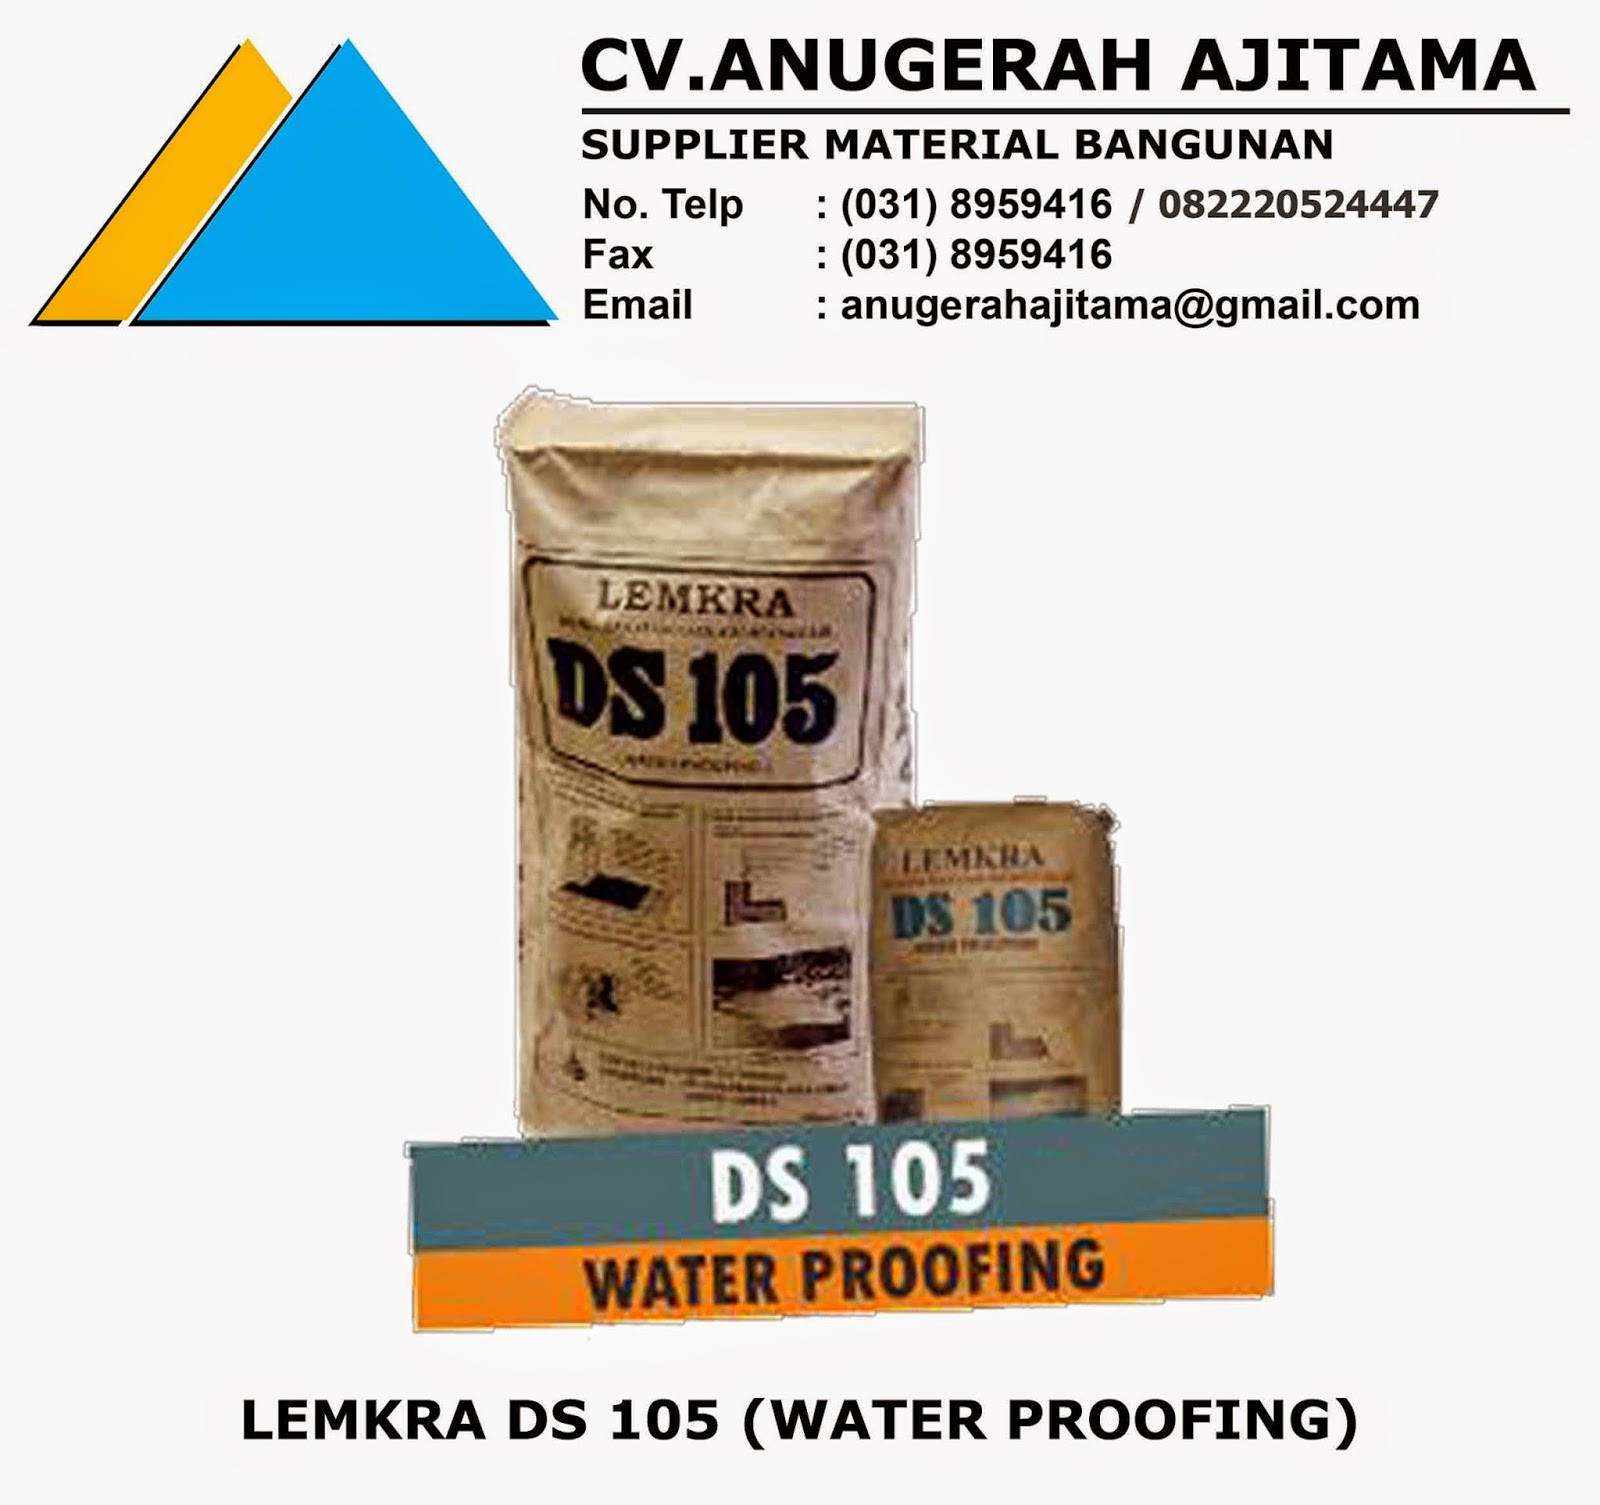 LEMKRA DS 105 (WATER PROOFING BASE)